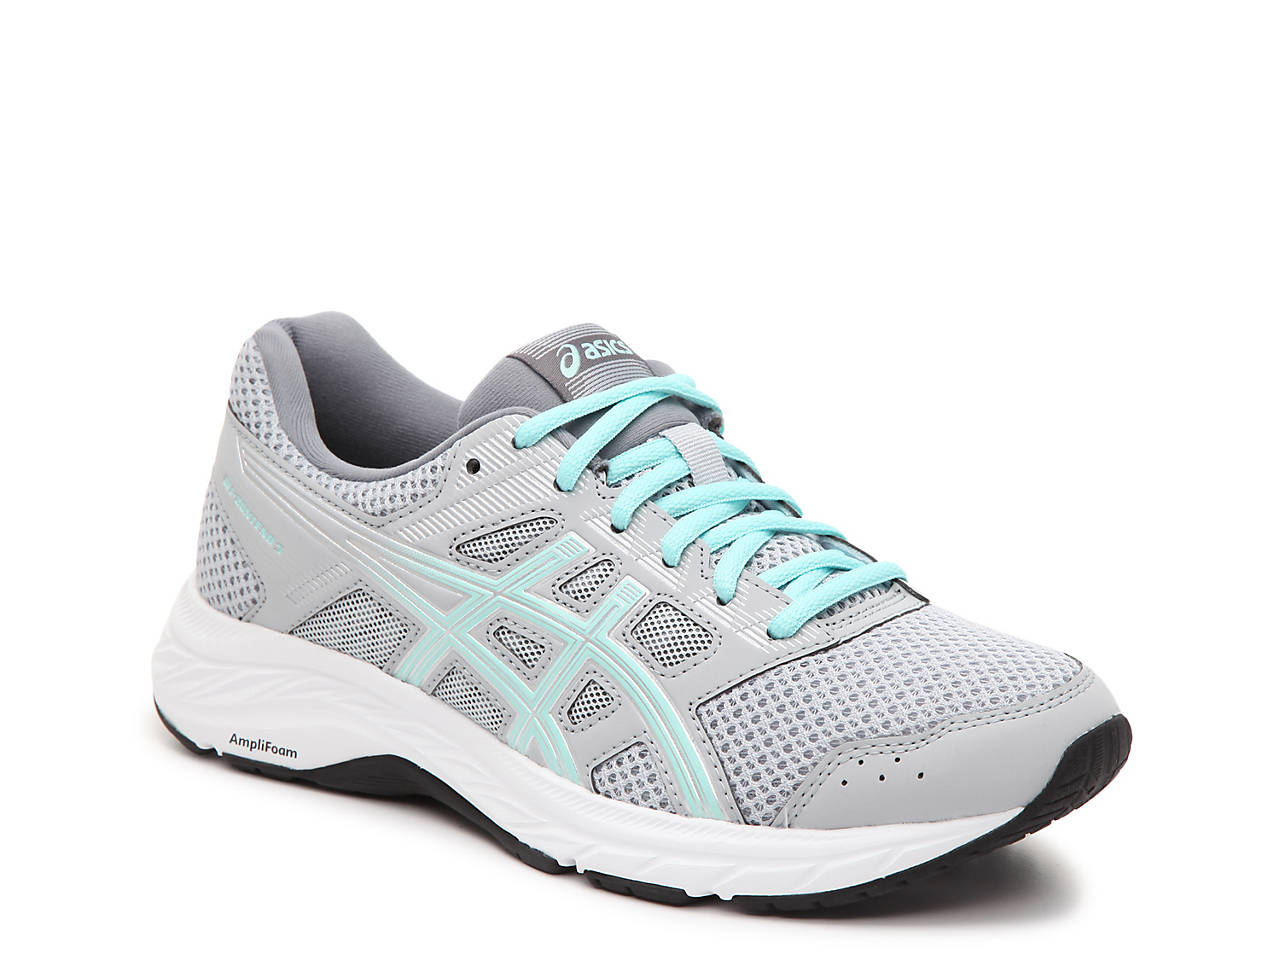 GEL-Contend 5 Running Shoe - Women's